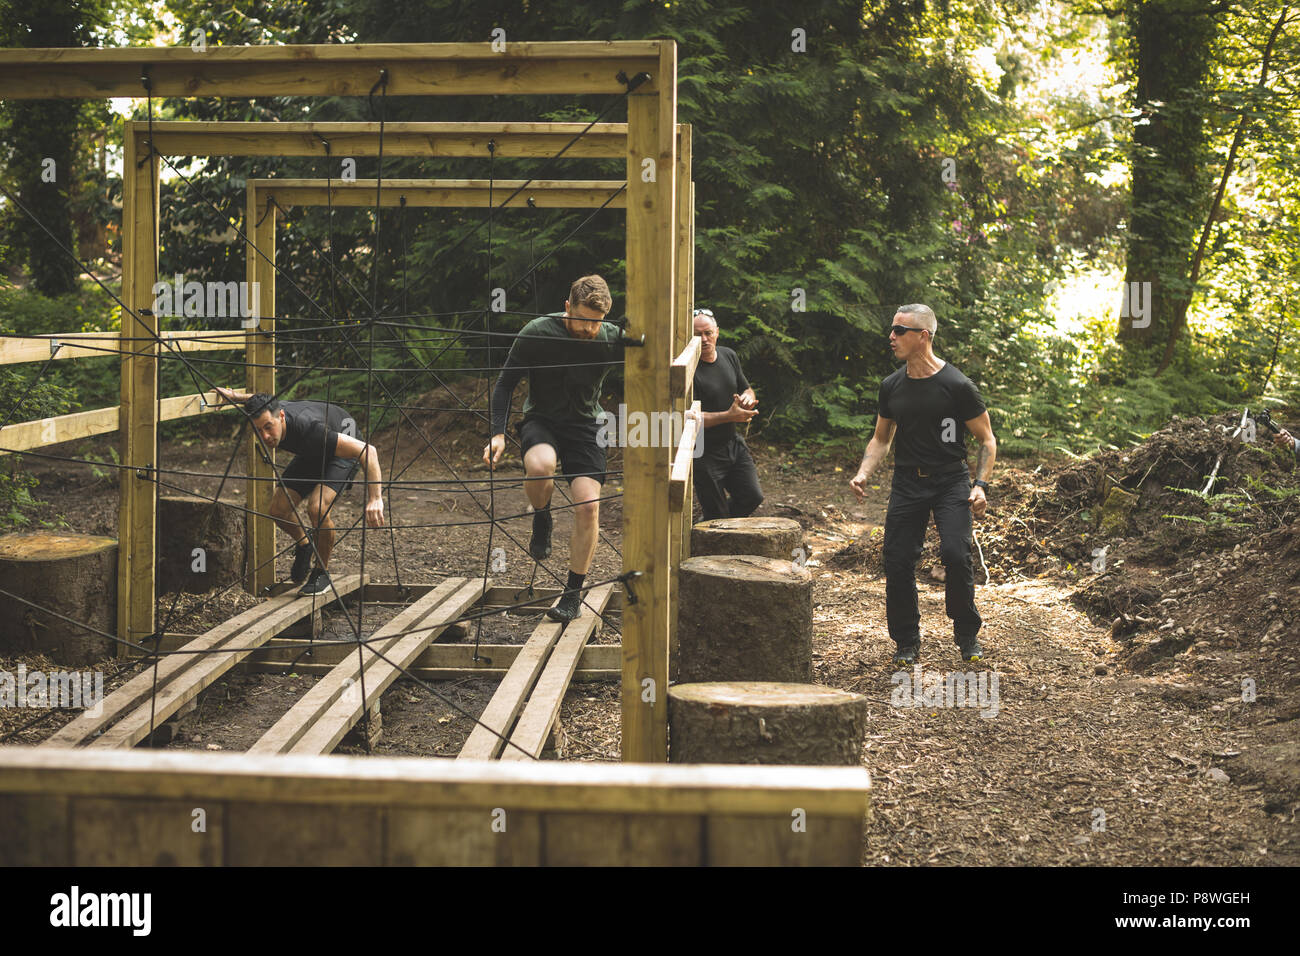 Group of mens training on obstacle course - Stock Image